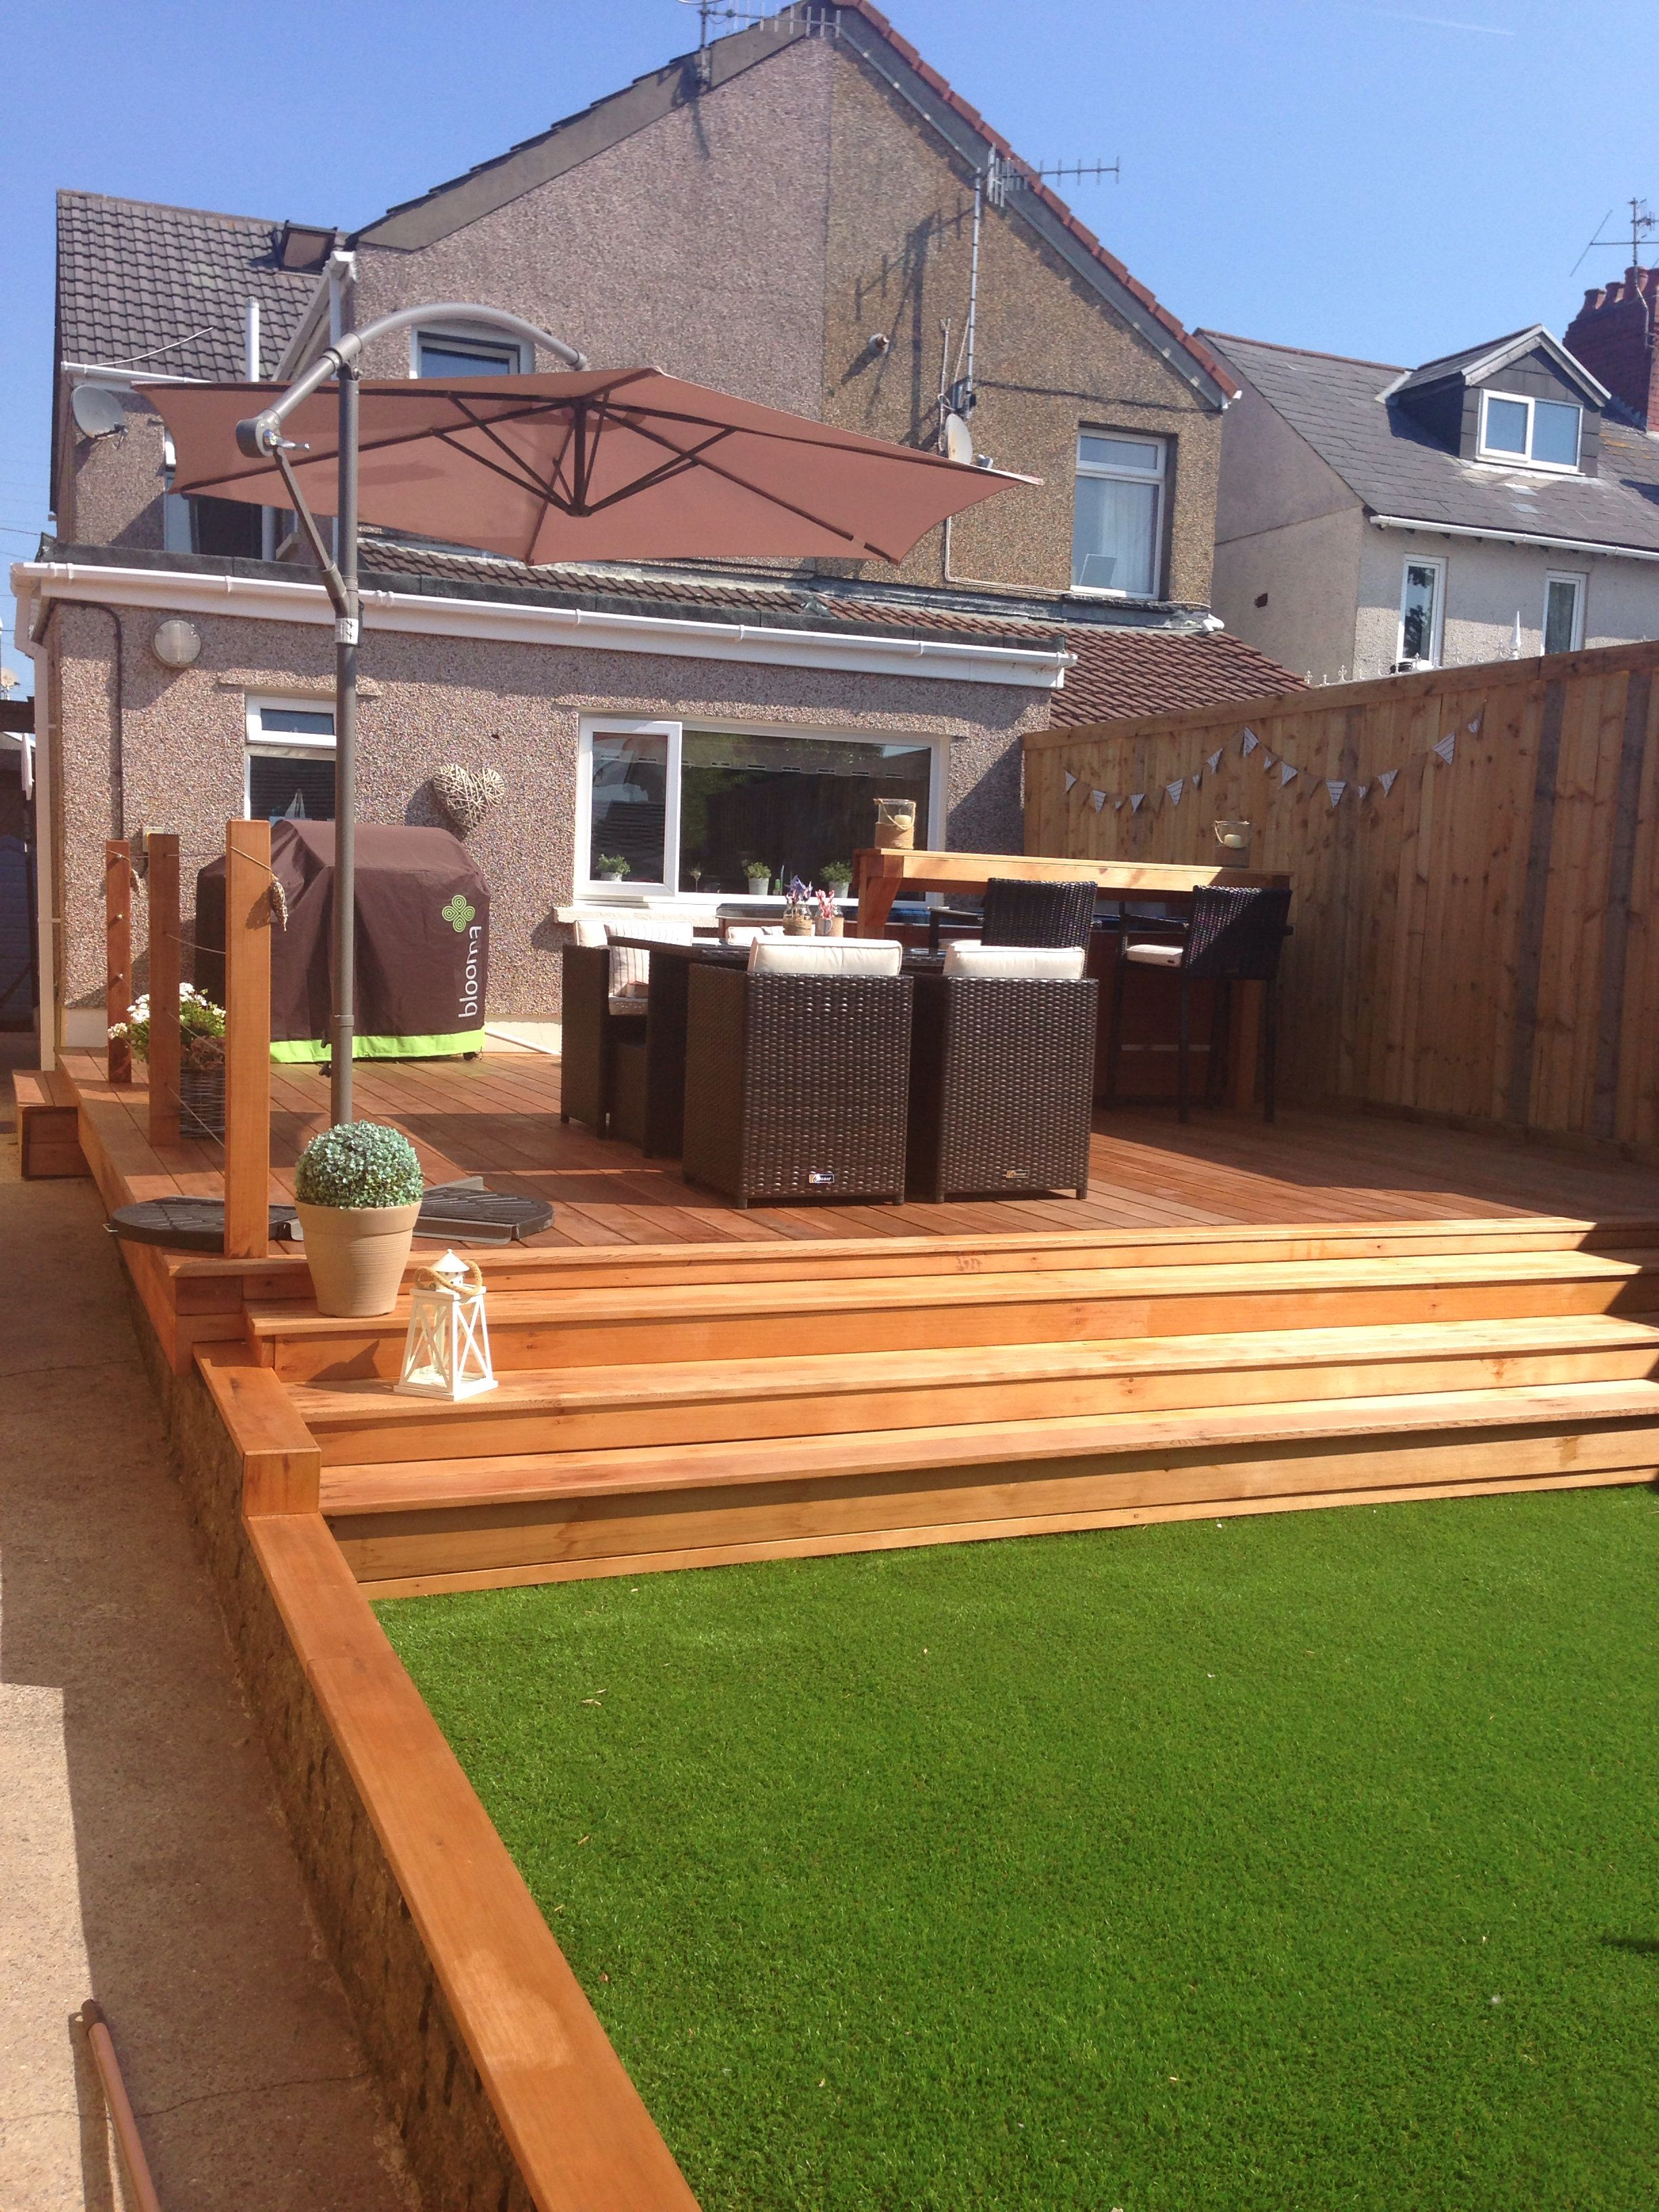 My Garden Astro Turf Grass Amp Cedar Wood Decking Hot Tub